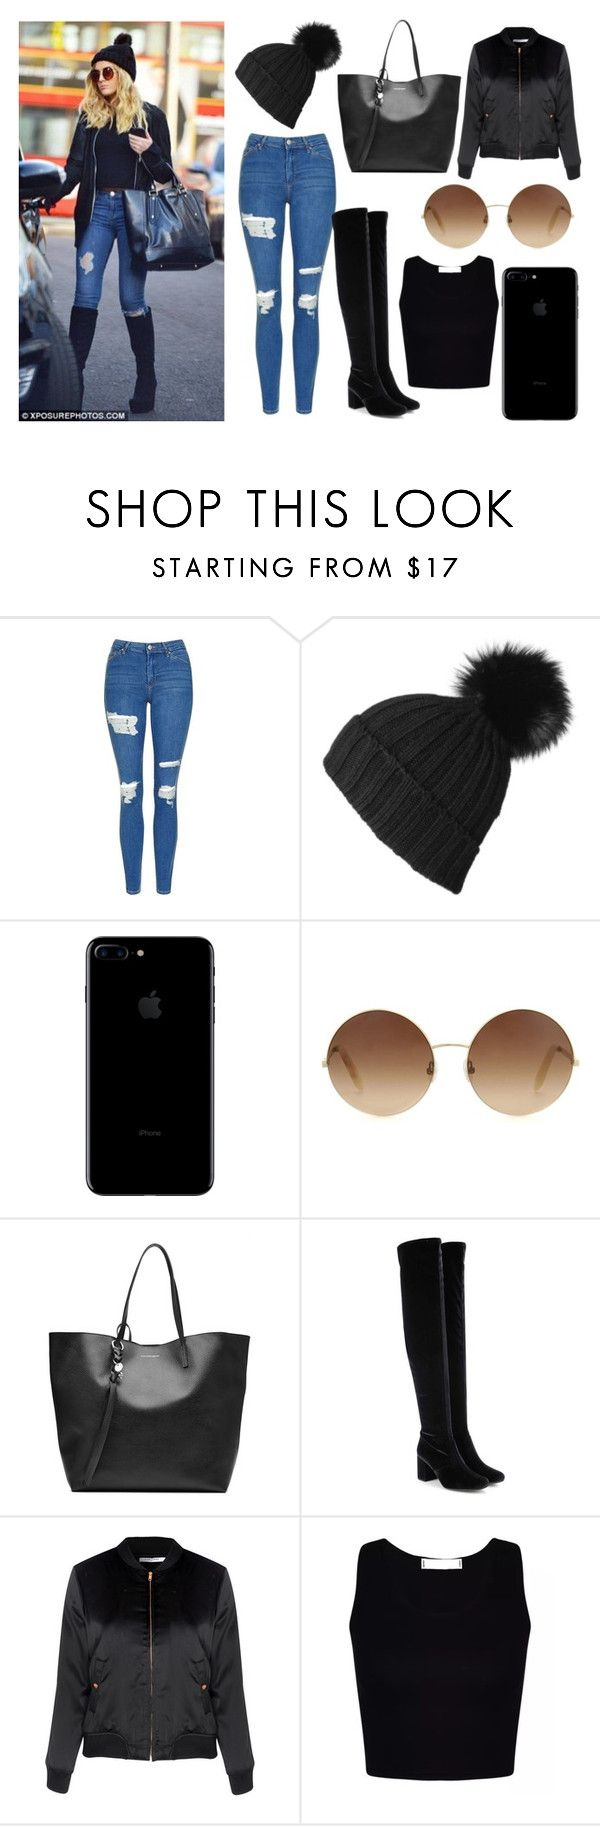 """""""Inspiration- Perrie Edwards"""" by jessyca-sc ❤ liked on Polyvore featuring Topshop, Black, Victoria Beckham, Alexander McQueen, Yves Saint Laurent, Glamorous, beautiful, inspiration and allblack"""